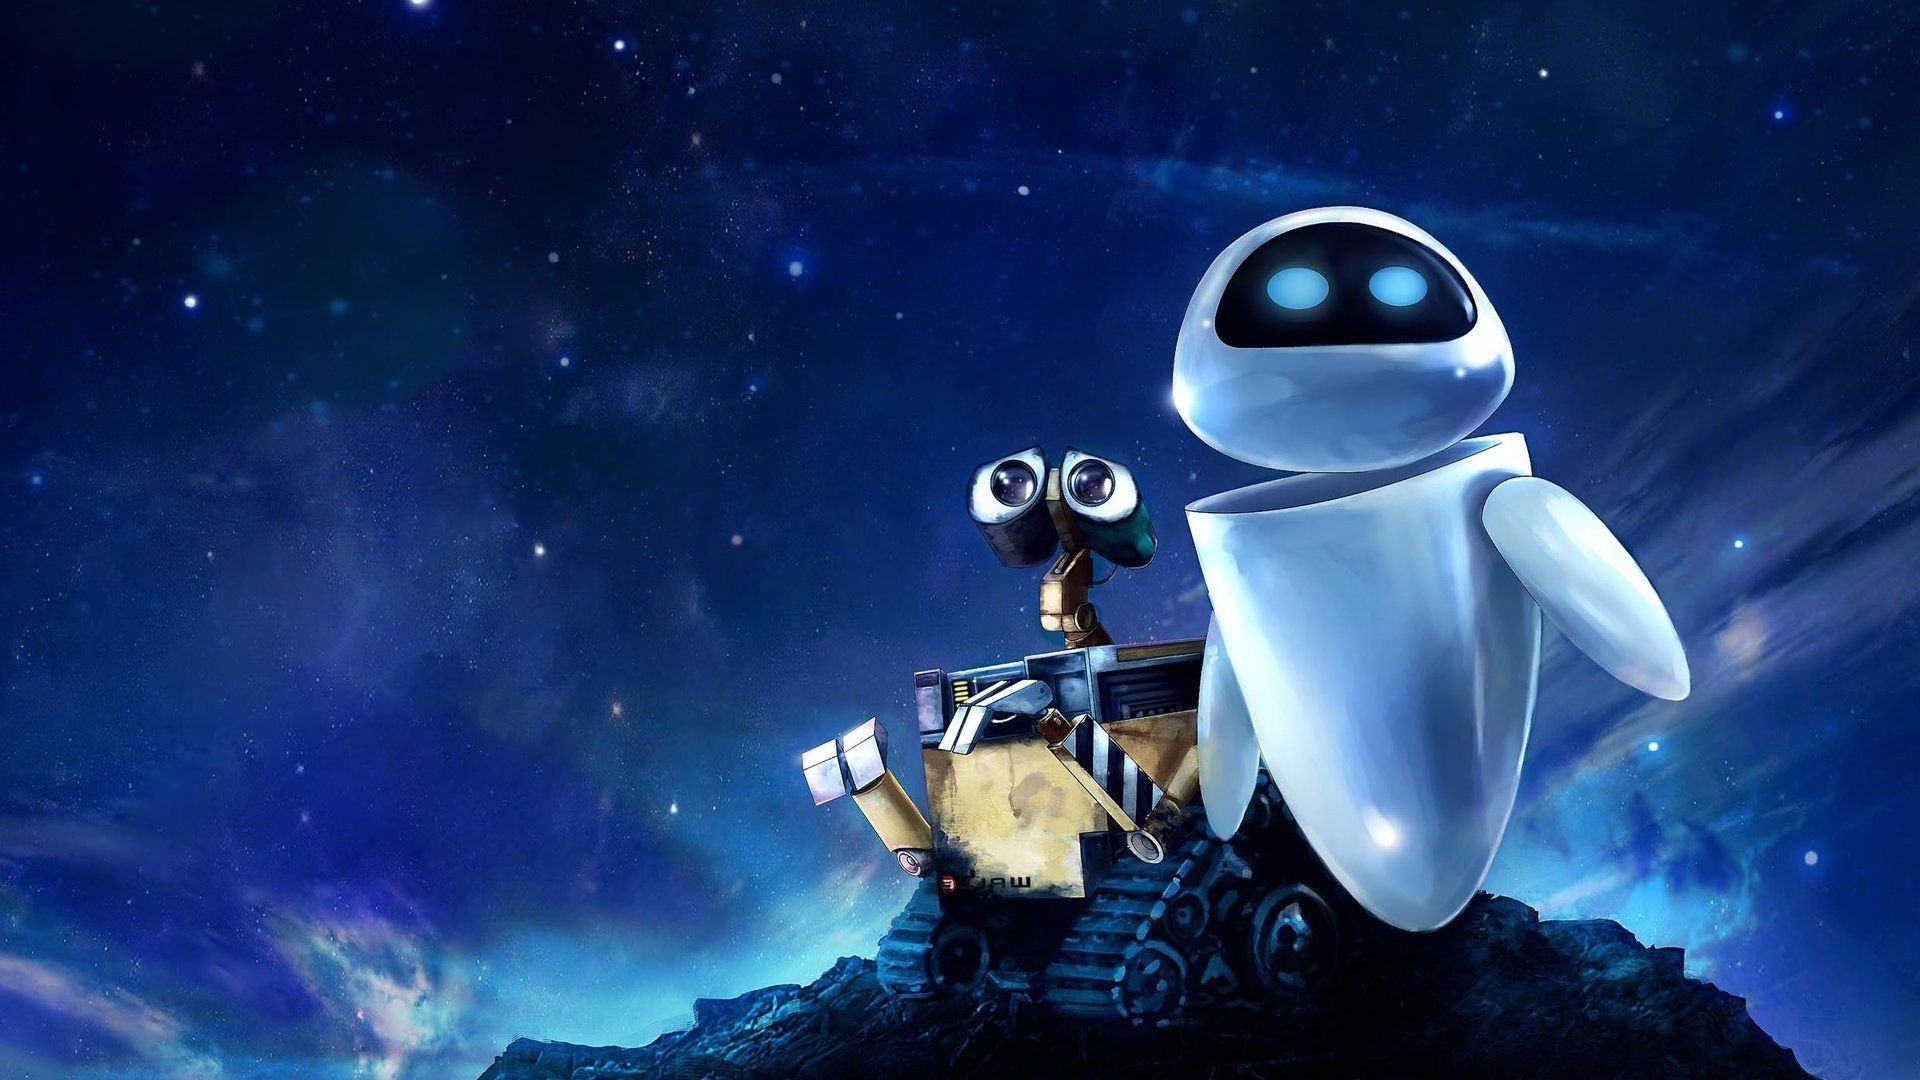 walle wallpapers free download